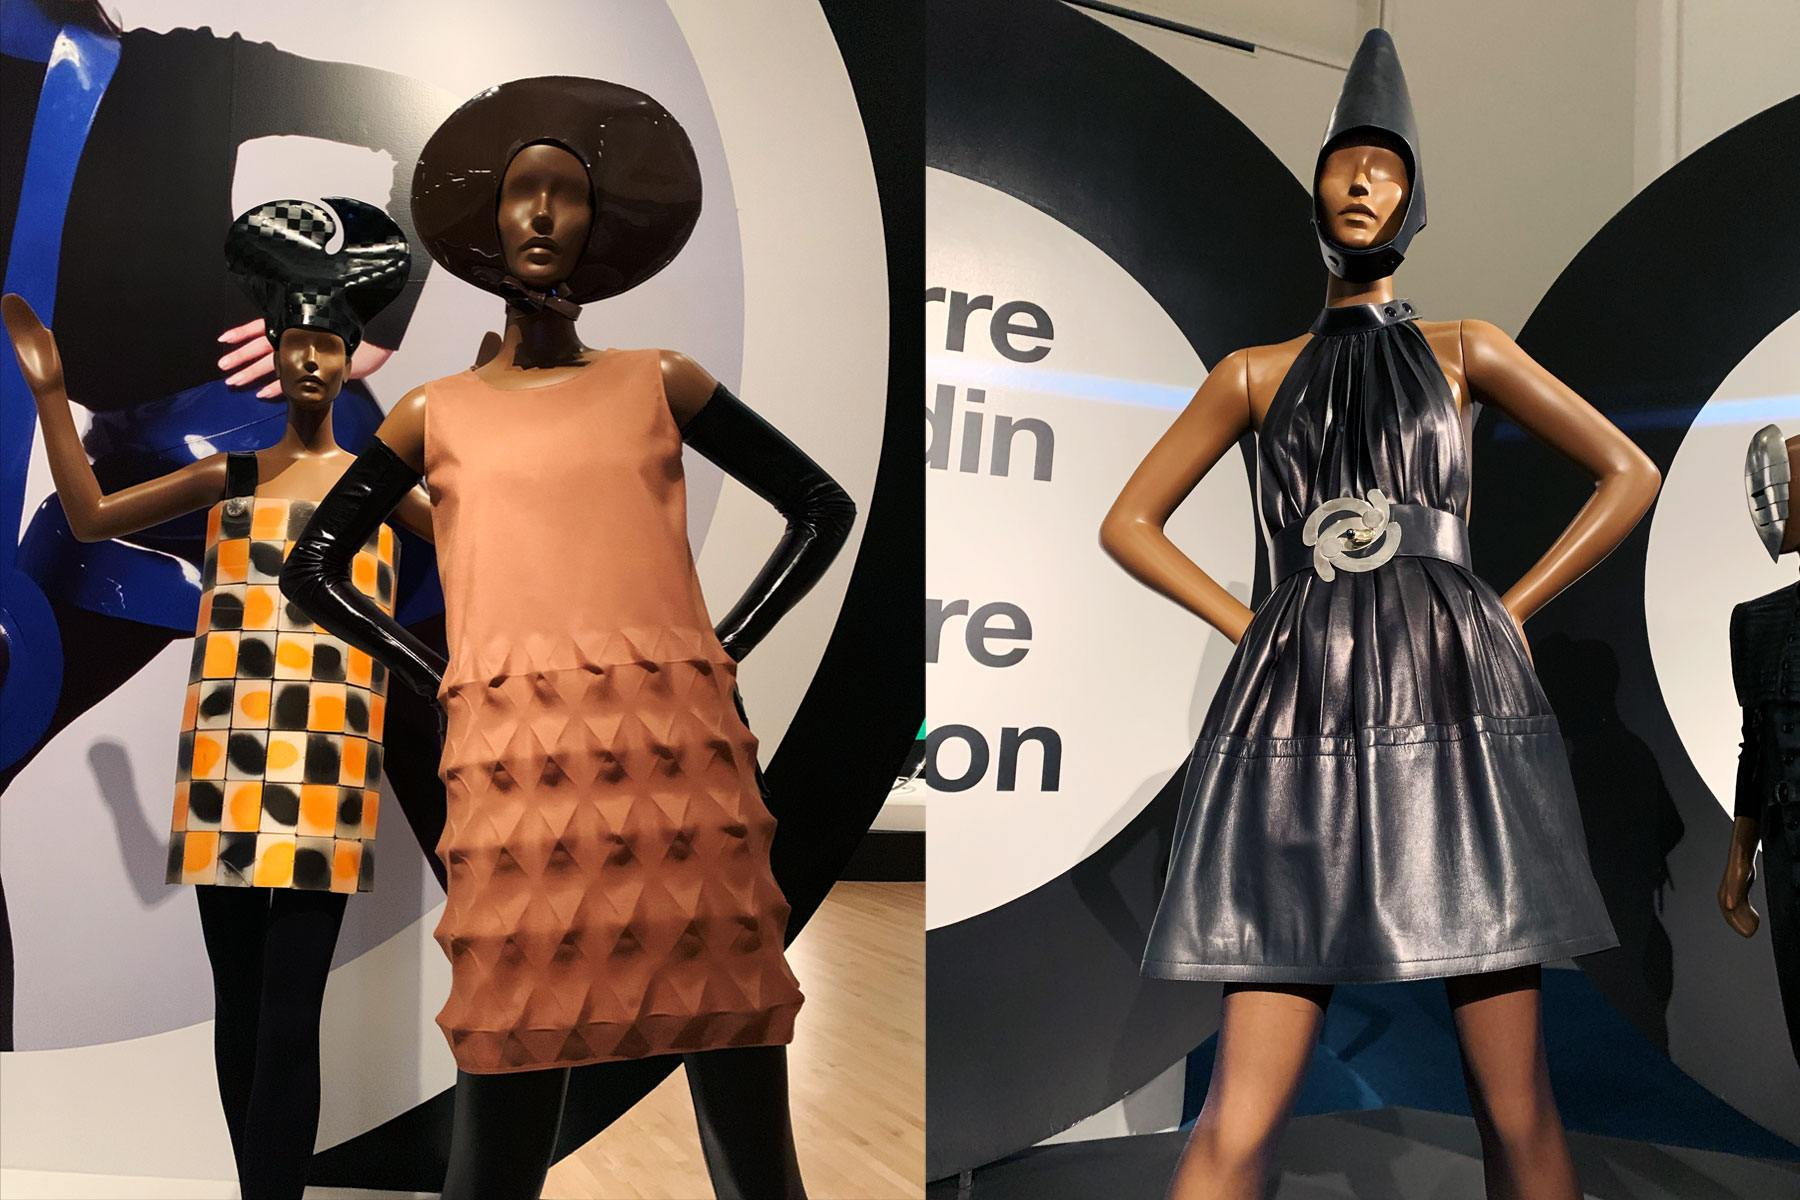 Vintage Pierre Cardin fashions at the Brooklyn Museum. Photographed by Alexander Thompson for Ponyboy magazine.